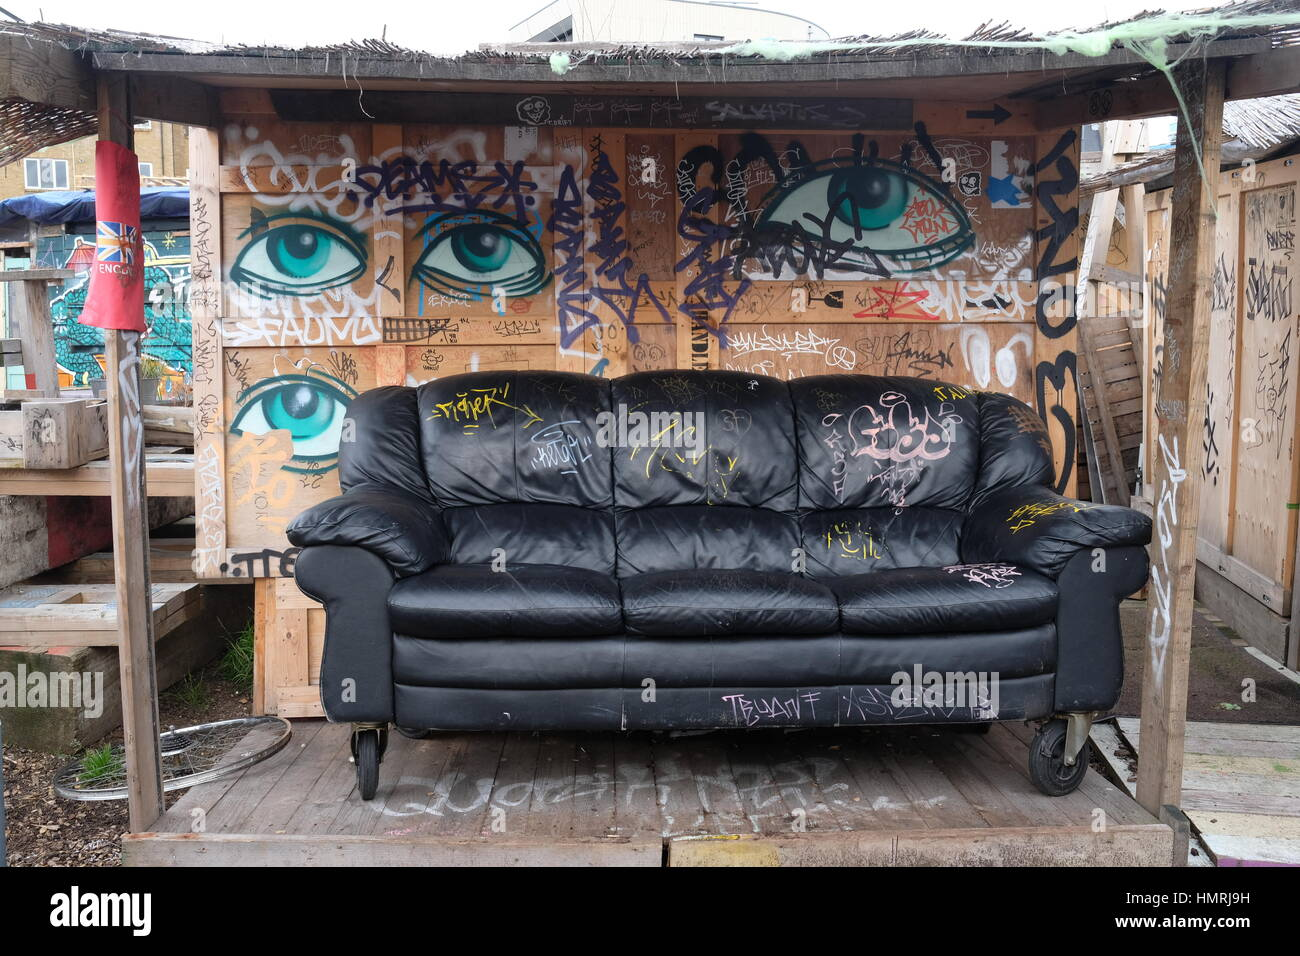 Leather Sofa Inside The Open Artistic Wooden Shed Decorated